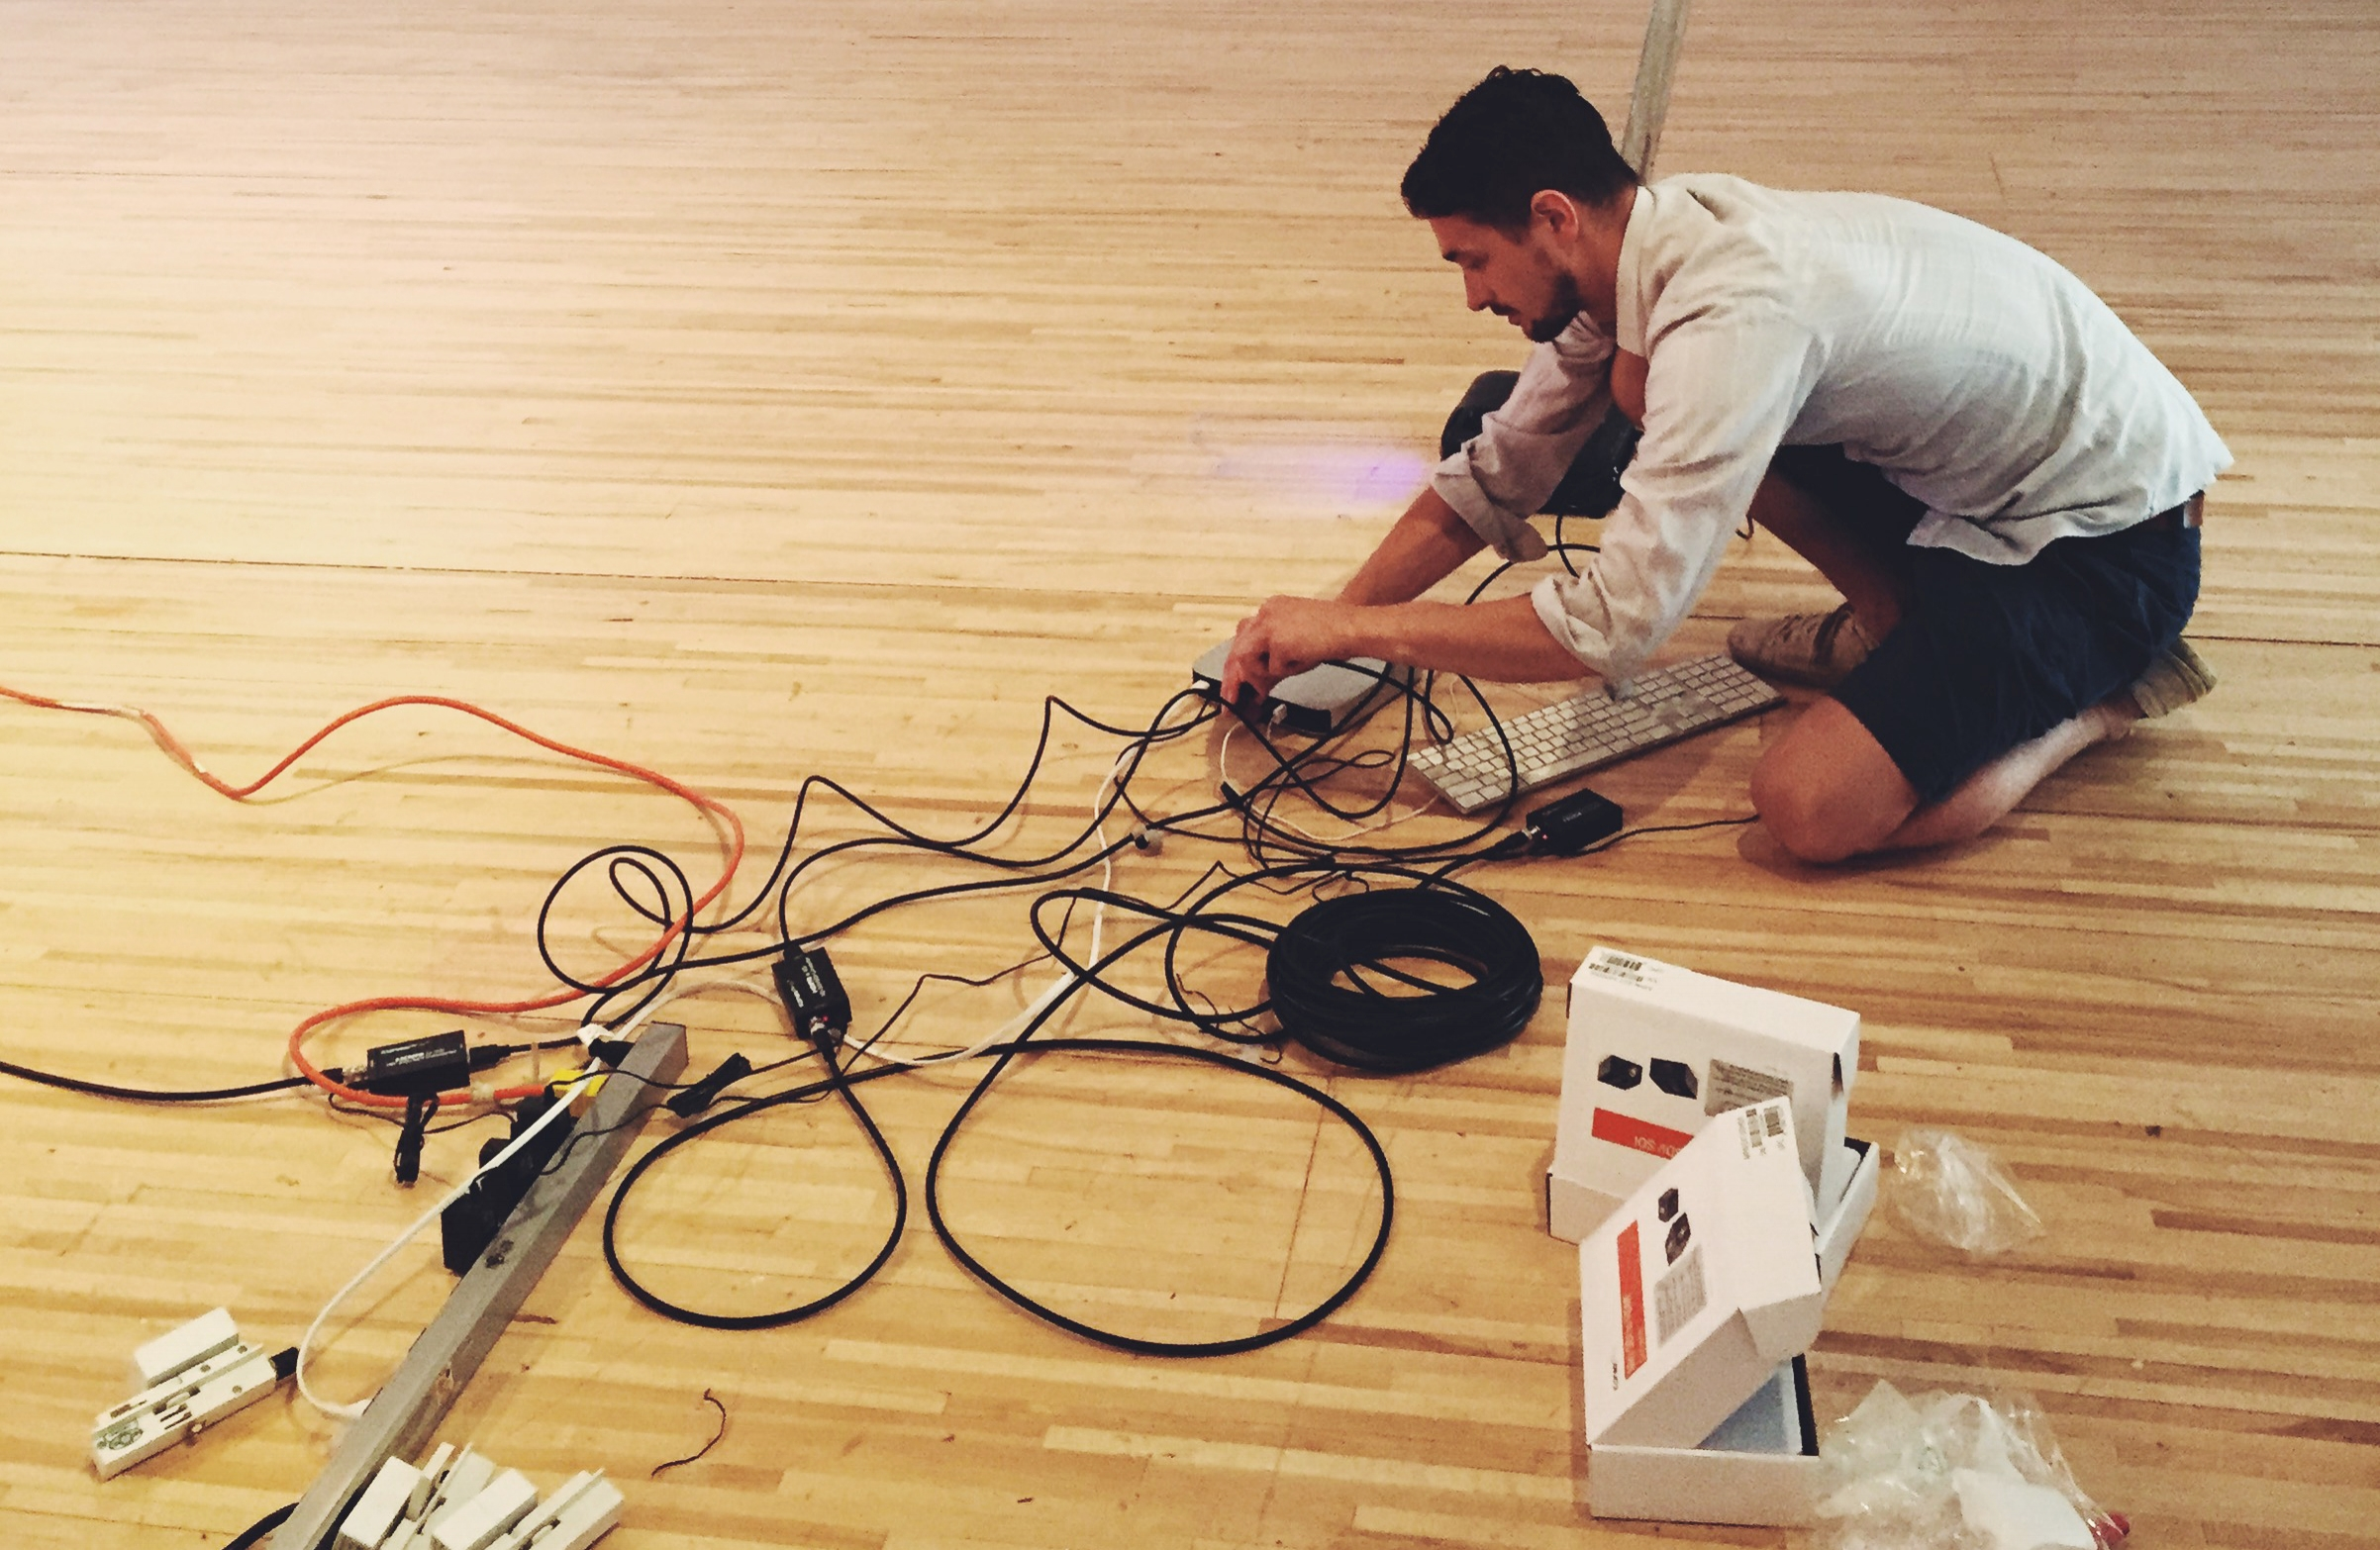 Sasha Phipps , helping to install my thesis exhibition. Or, doing all the wiring as I lay there, ineffective, on the floor. Be better than me.